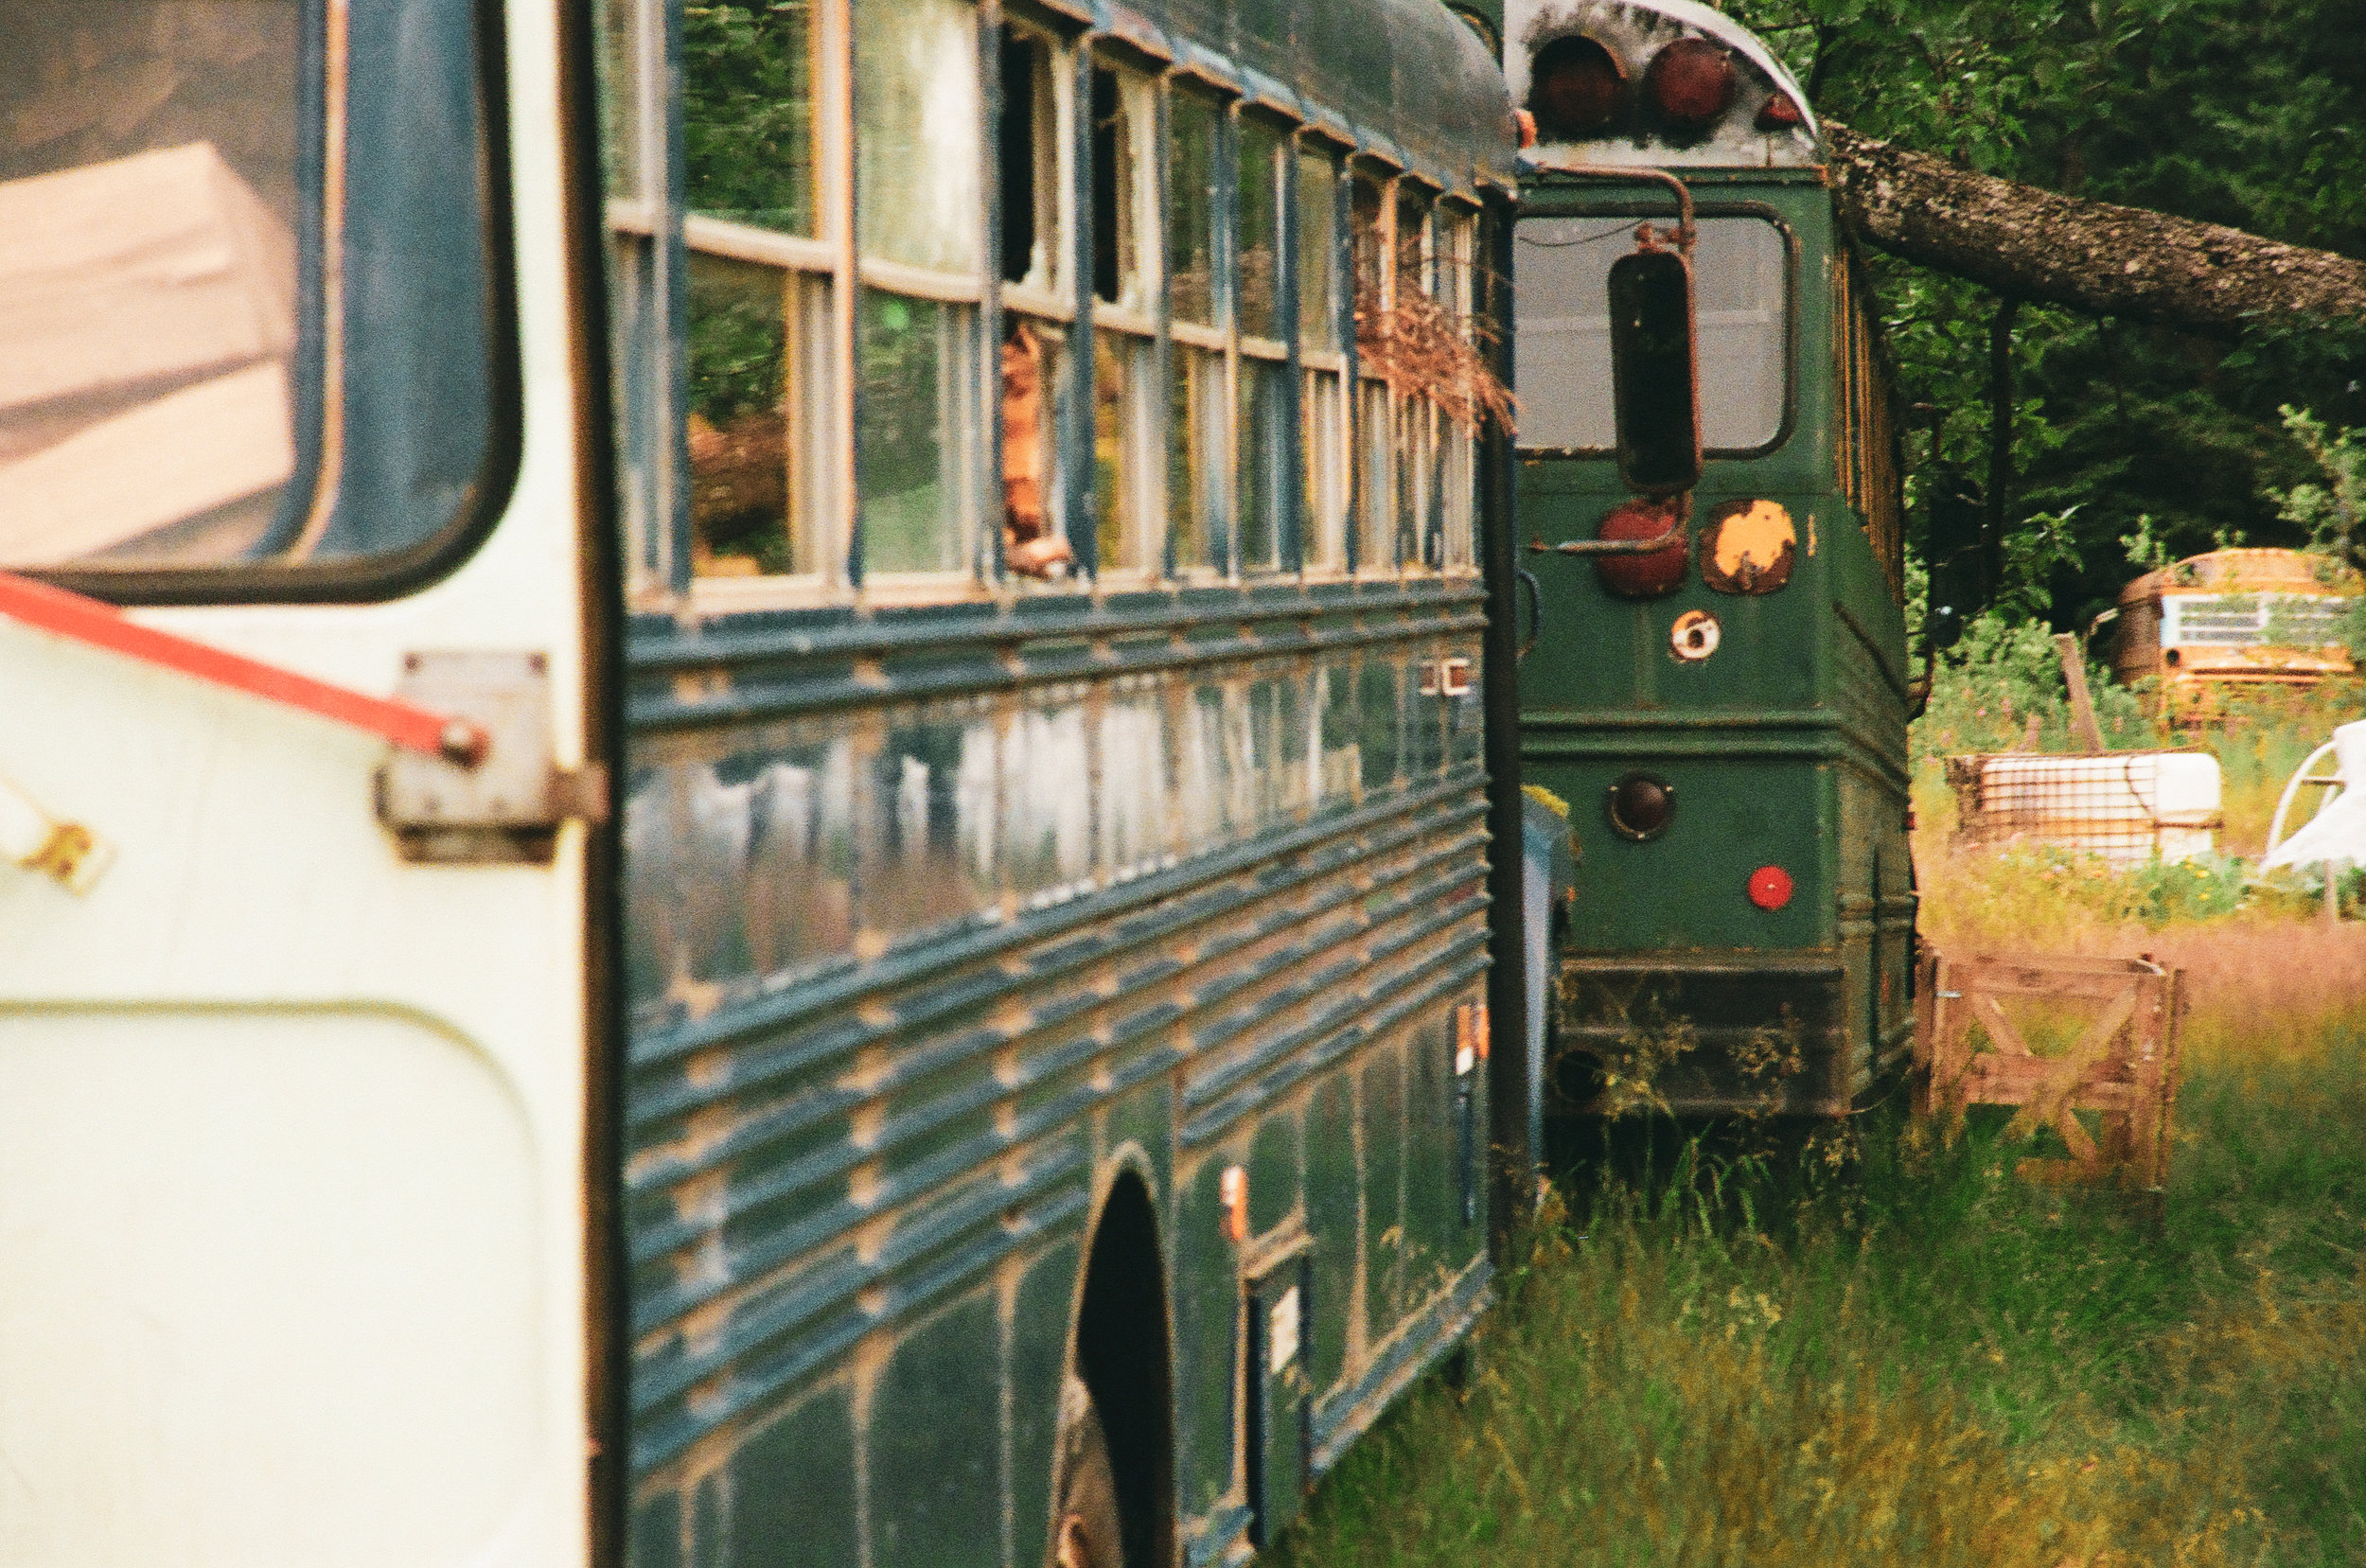 Abandoned Kodiak school system buses used for firewood and tool storage.